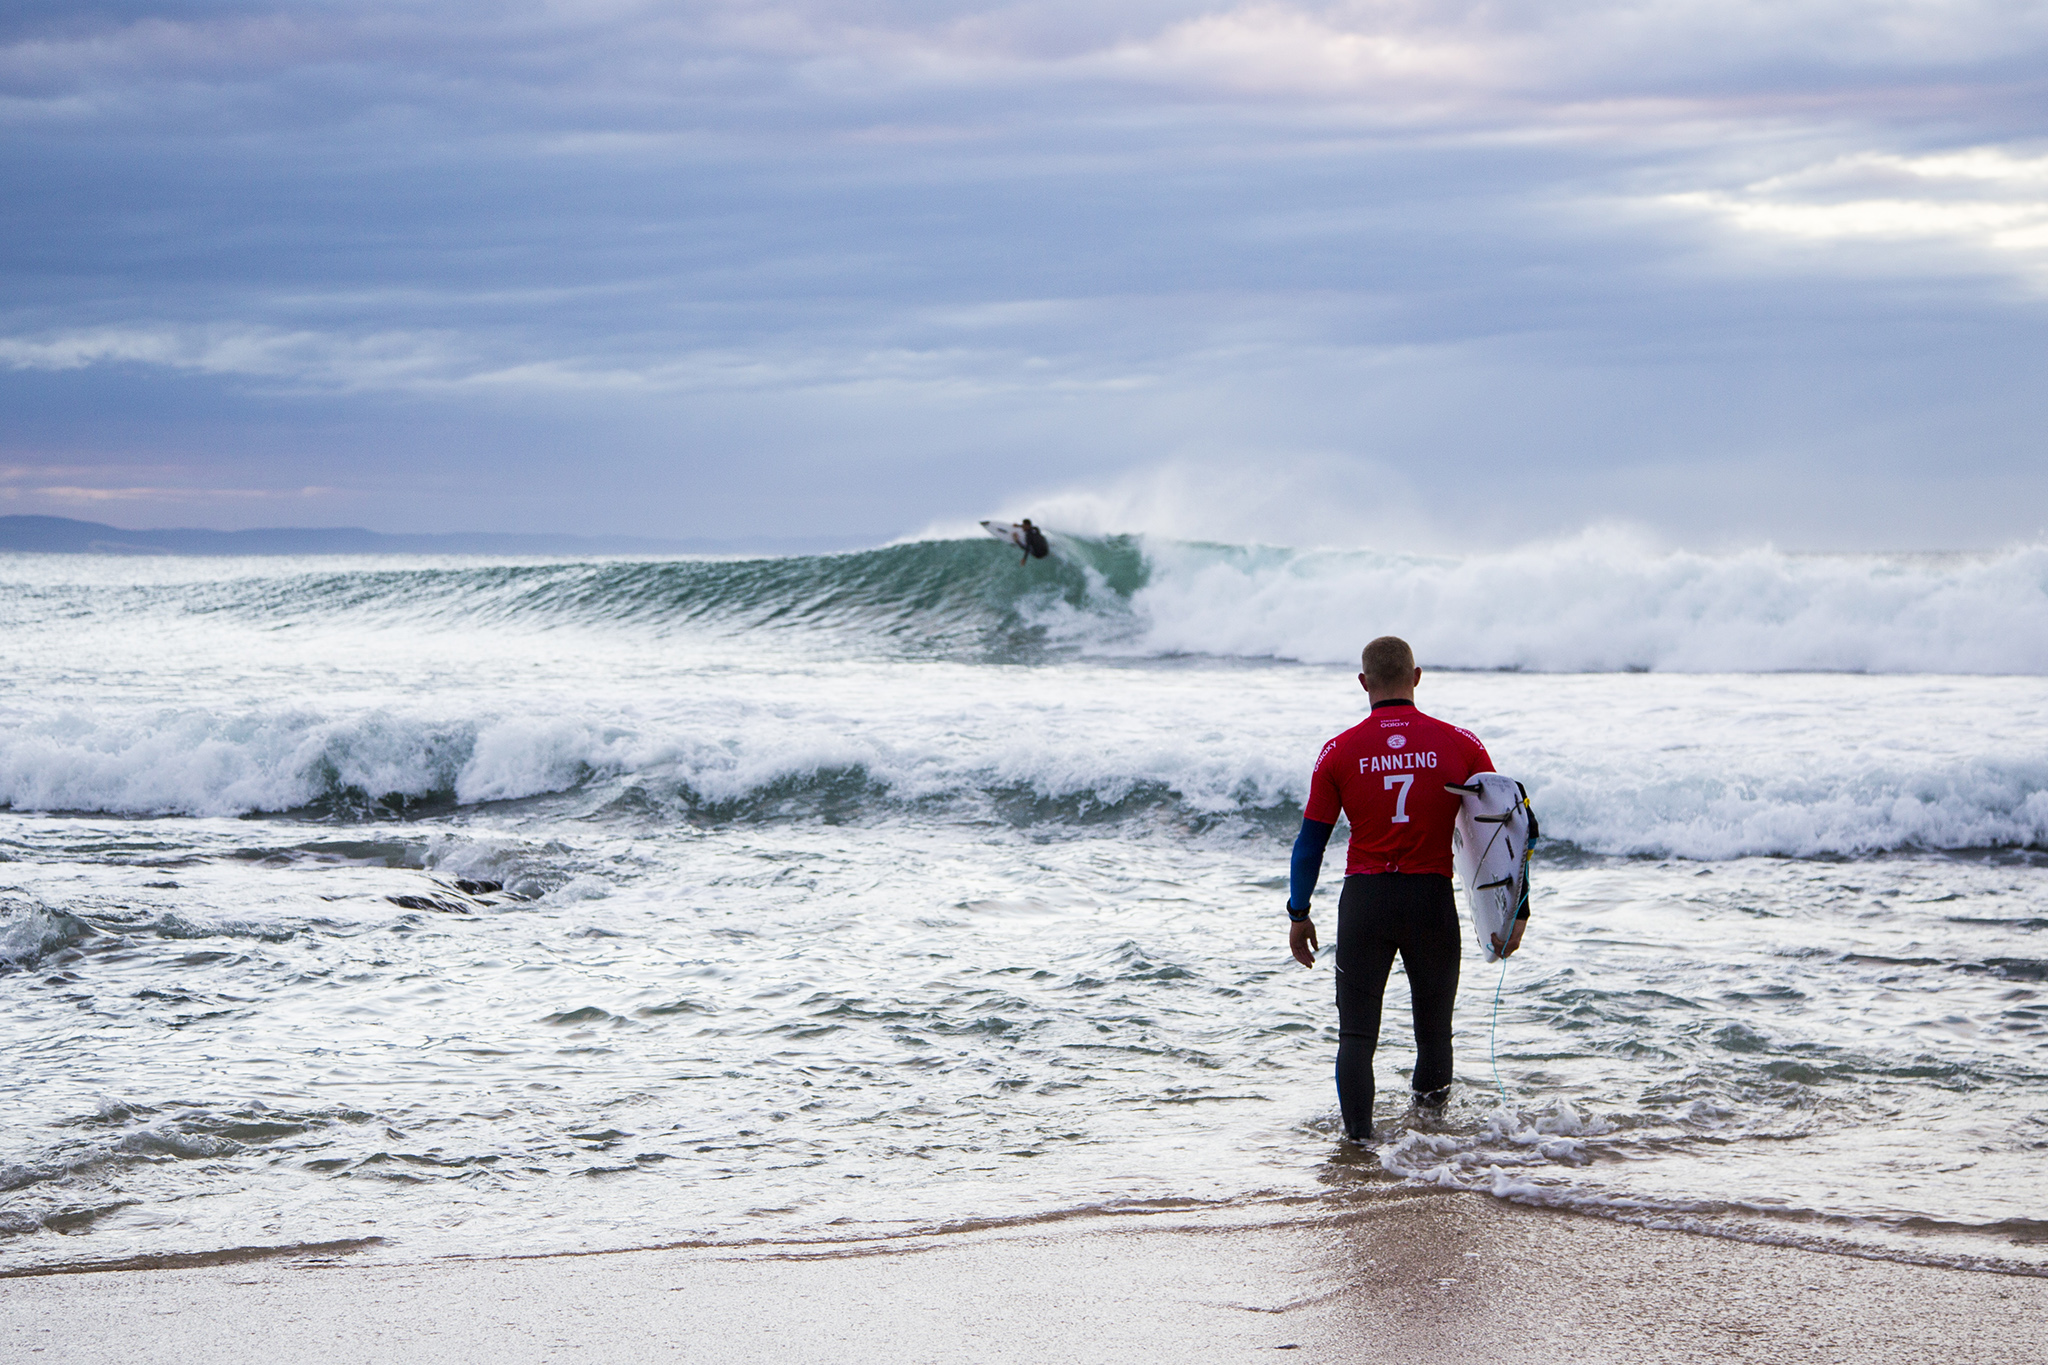 """Mick Fanning of Australia (pictured) before his round one victory at the JBay Open in South Africa on Wednesday July 6, 2016. PHOTO: © WSL/ Tostee SOCIAL:@wsl This image is provided by the Association of Surfing Professionals LLC (""""World Surf League"""") royalty-free for editorial use only. No commercial rights are granted to the Images in any way. The Images are provided on an """"as is"""" basis and no warranty is provided for use of a particular purpose. Rights to individuals within the Images are not provided. The copyright is owned by World Surf League. Sale or license of the Images is prohibited. ALL RIGHTS RESERVED."""